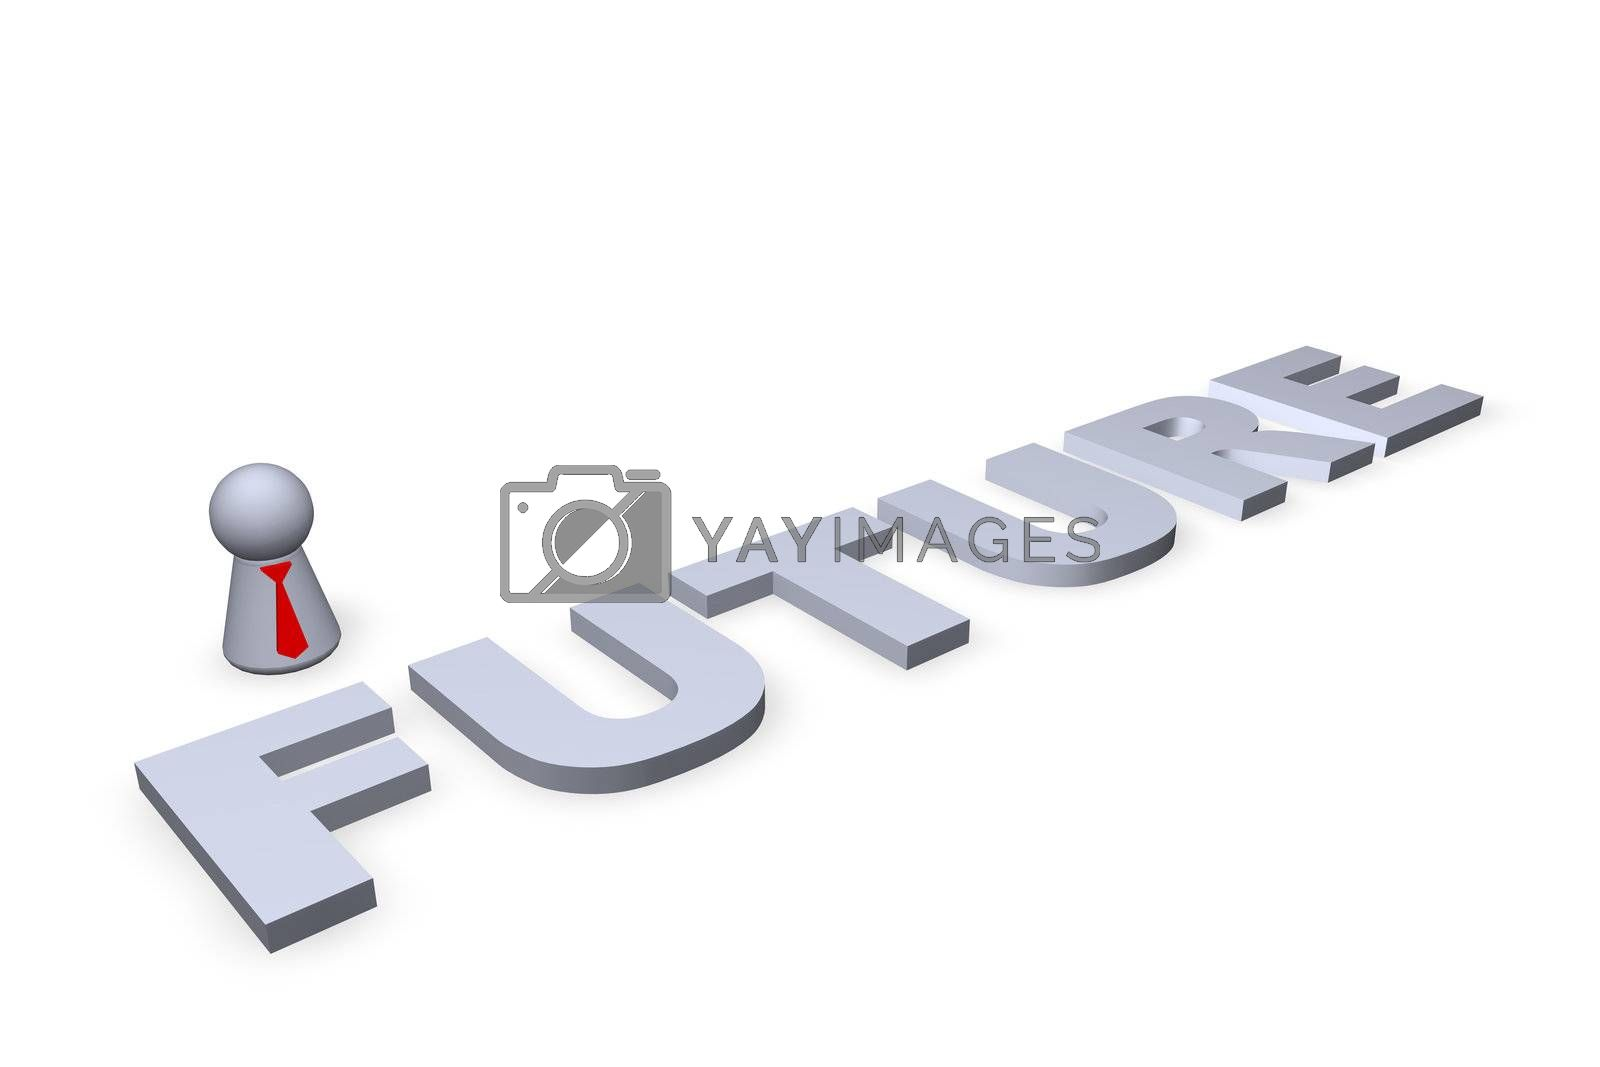 future text in 3d and play figure with red tie